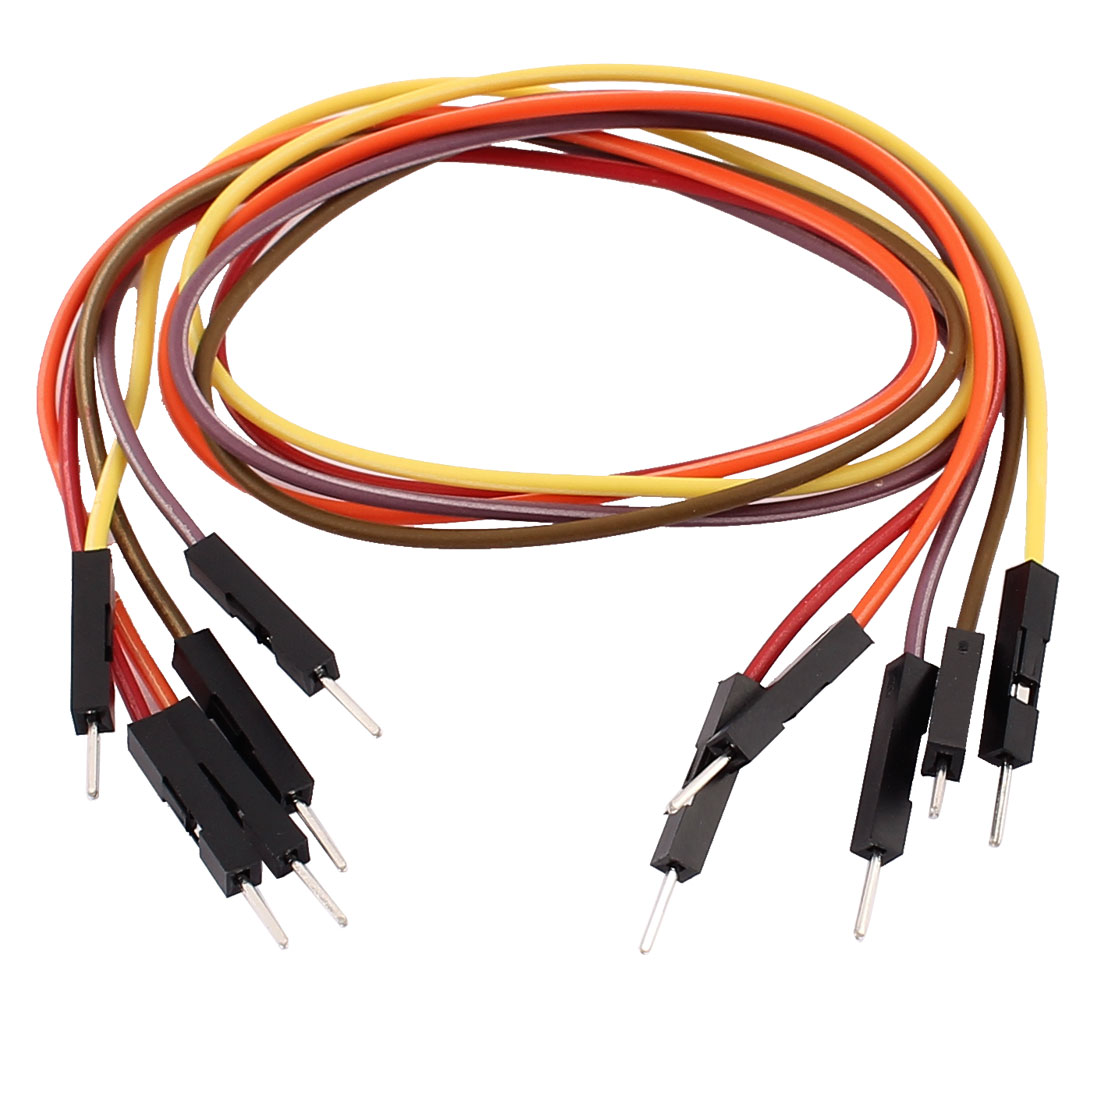 5PCS 2.54mm Pitch 1P Male Breadboard Double Head Jumper Wire Cable 30cm Length